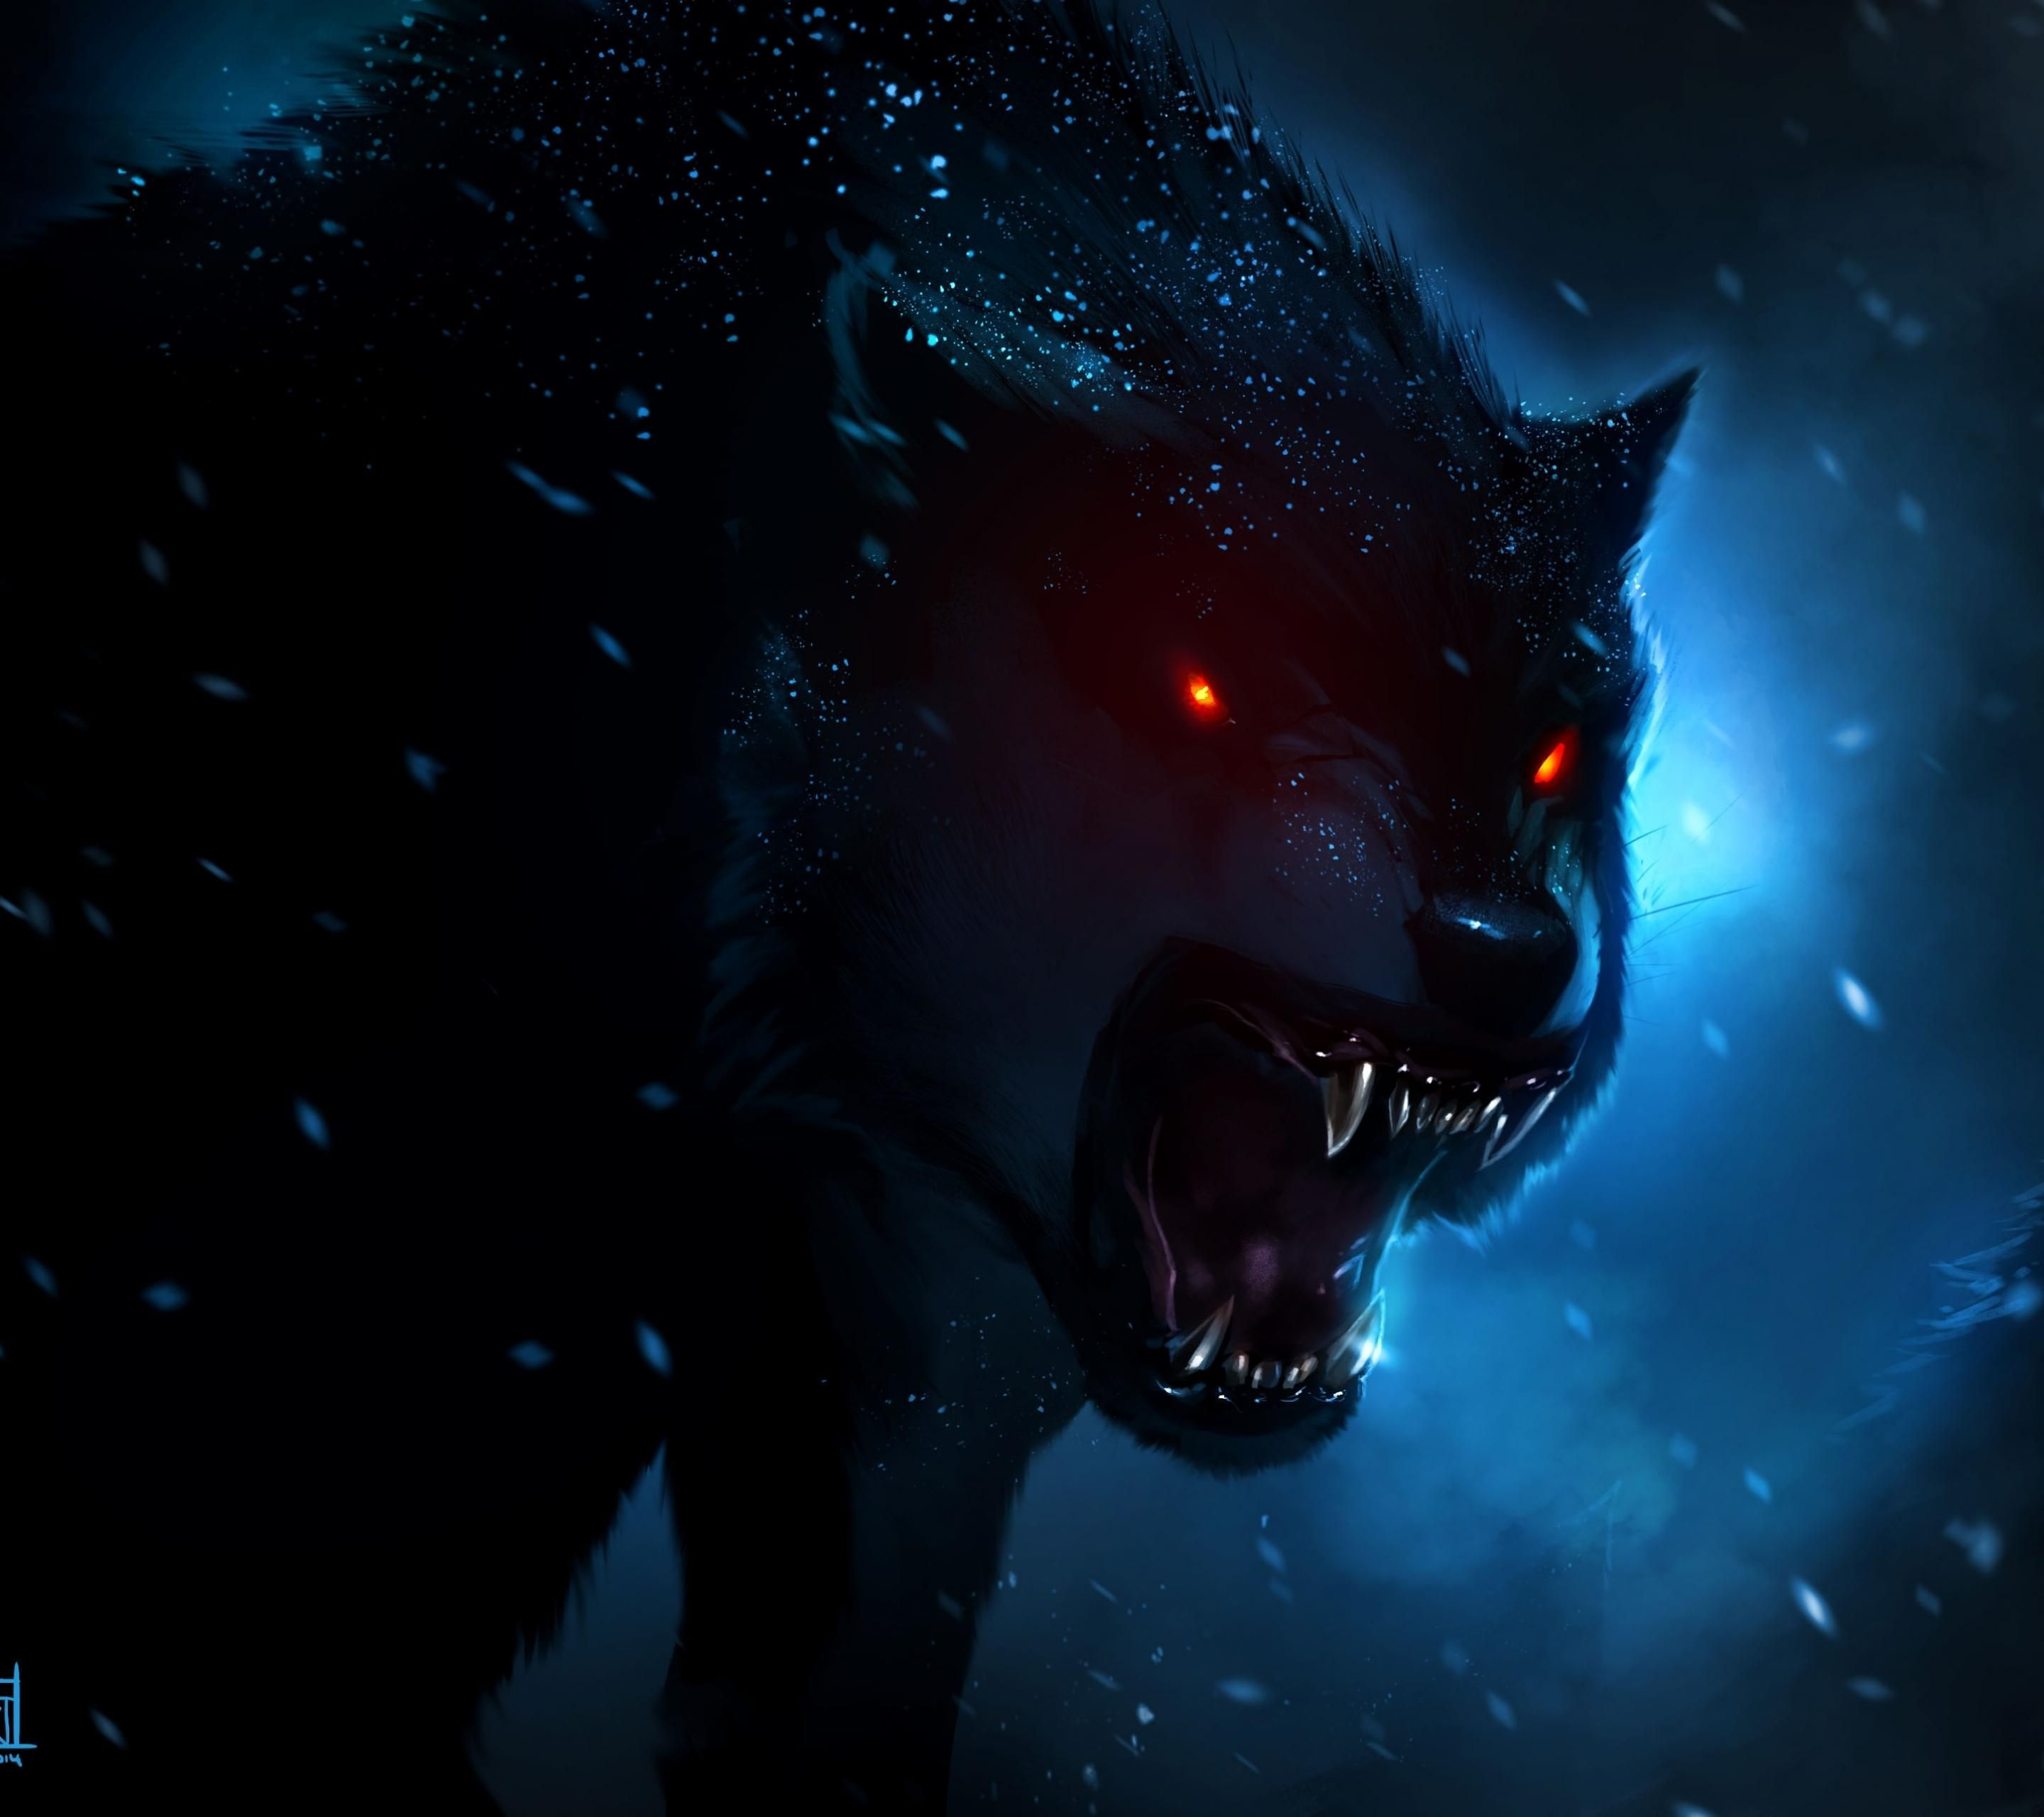 Wolf Hd Wallpaper For Mobile 43 Image Collections Of Wallpapers Wolf Wallpaper Fantasy Wolf Demon Wolf